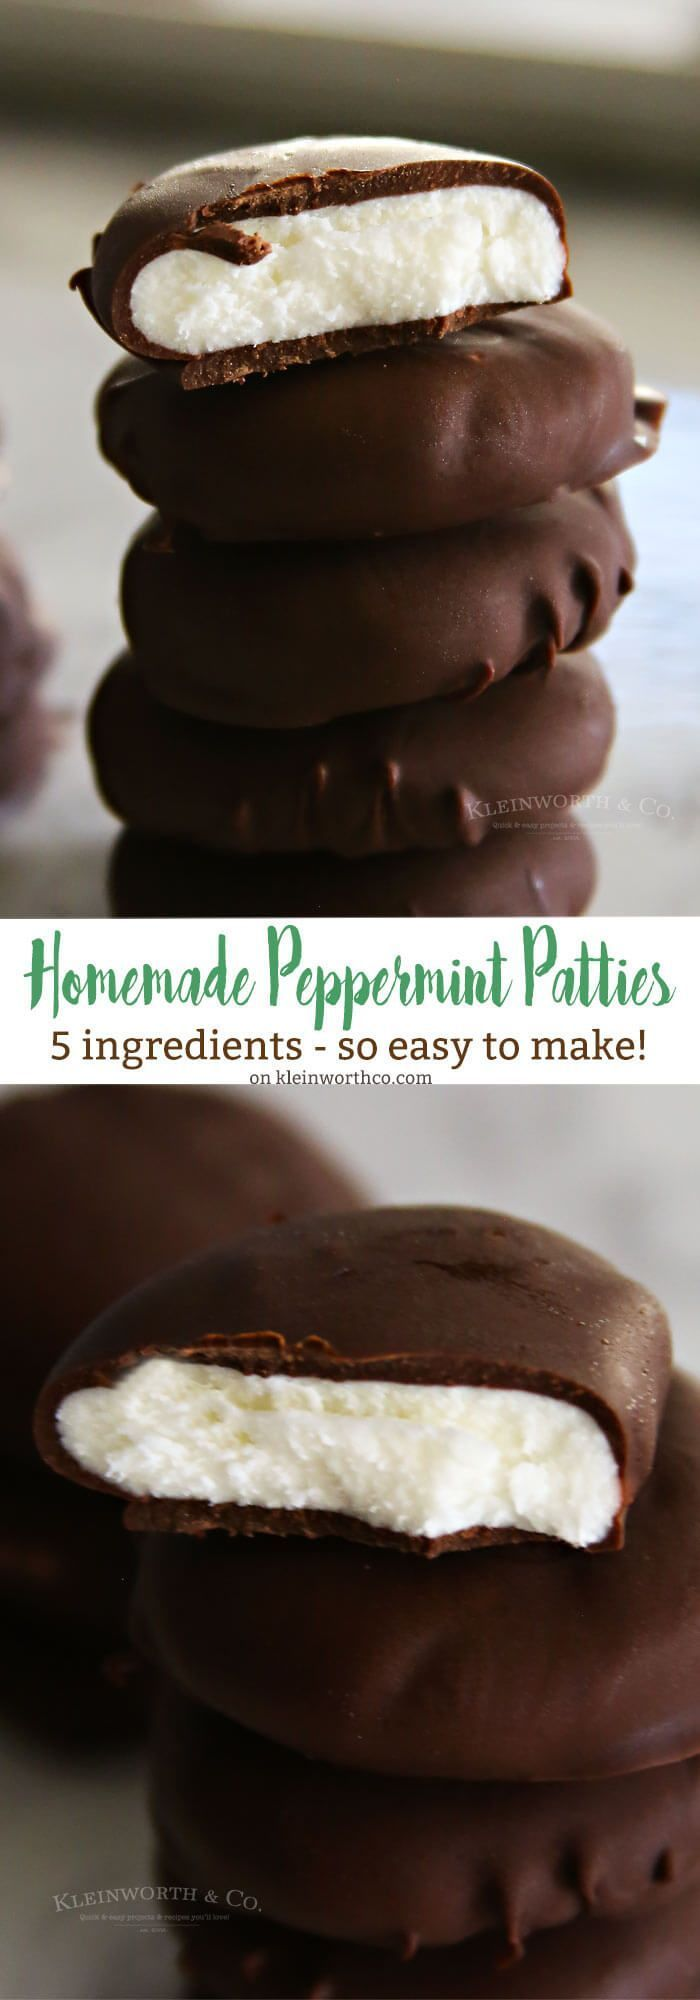 Homemade Peppermint Patties are one of the easiest minty desserts to make for St. Patrick's Day or any other holiday. Dark chocolate & mint! via @Kleinworth & Co.